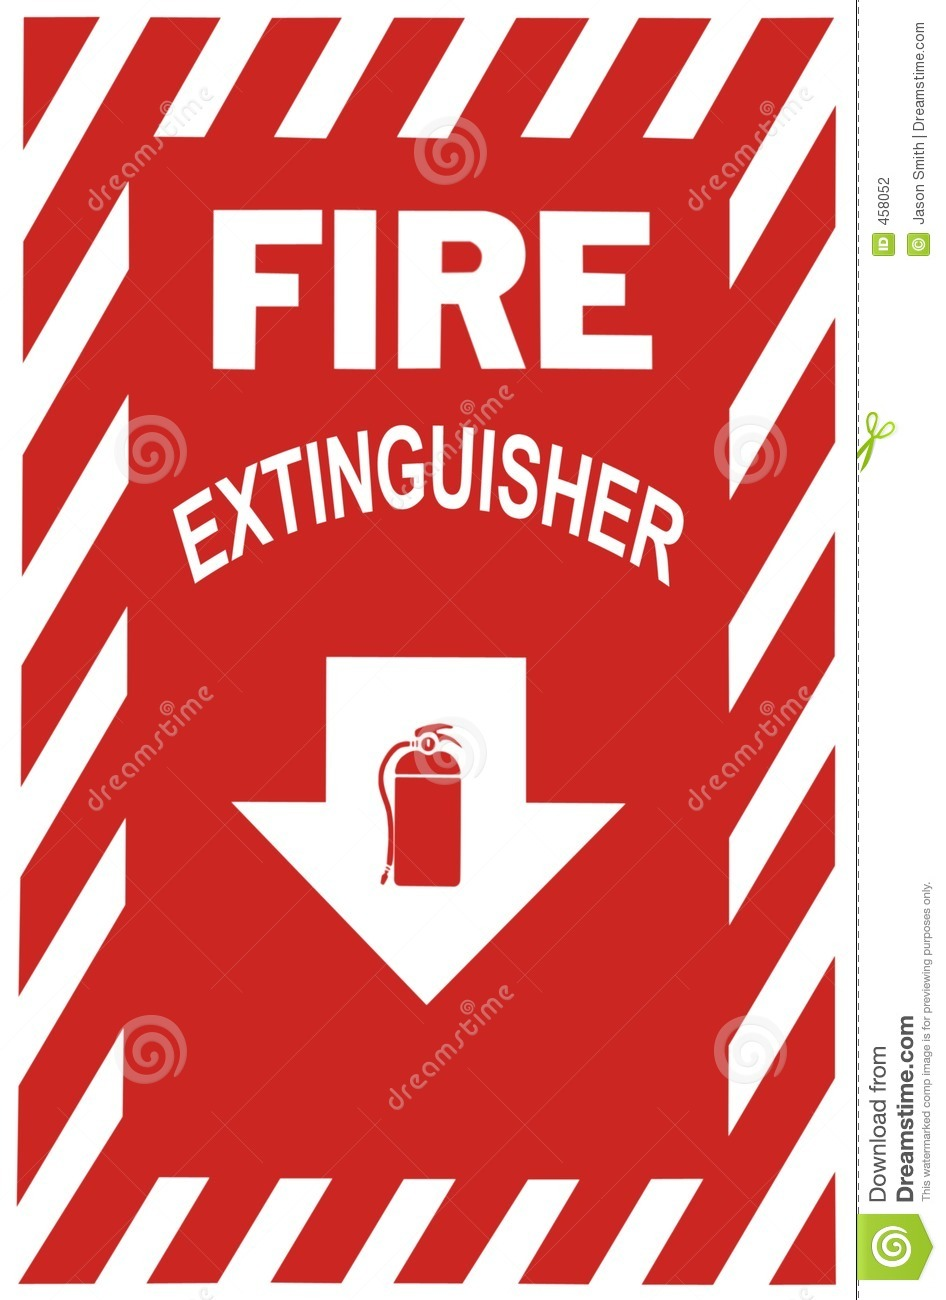 picture about Printable Fire Extinguisher Sign referred to as Fireplace Extinguisher Indication inventory image. Graphic of flame, protection